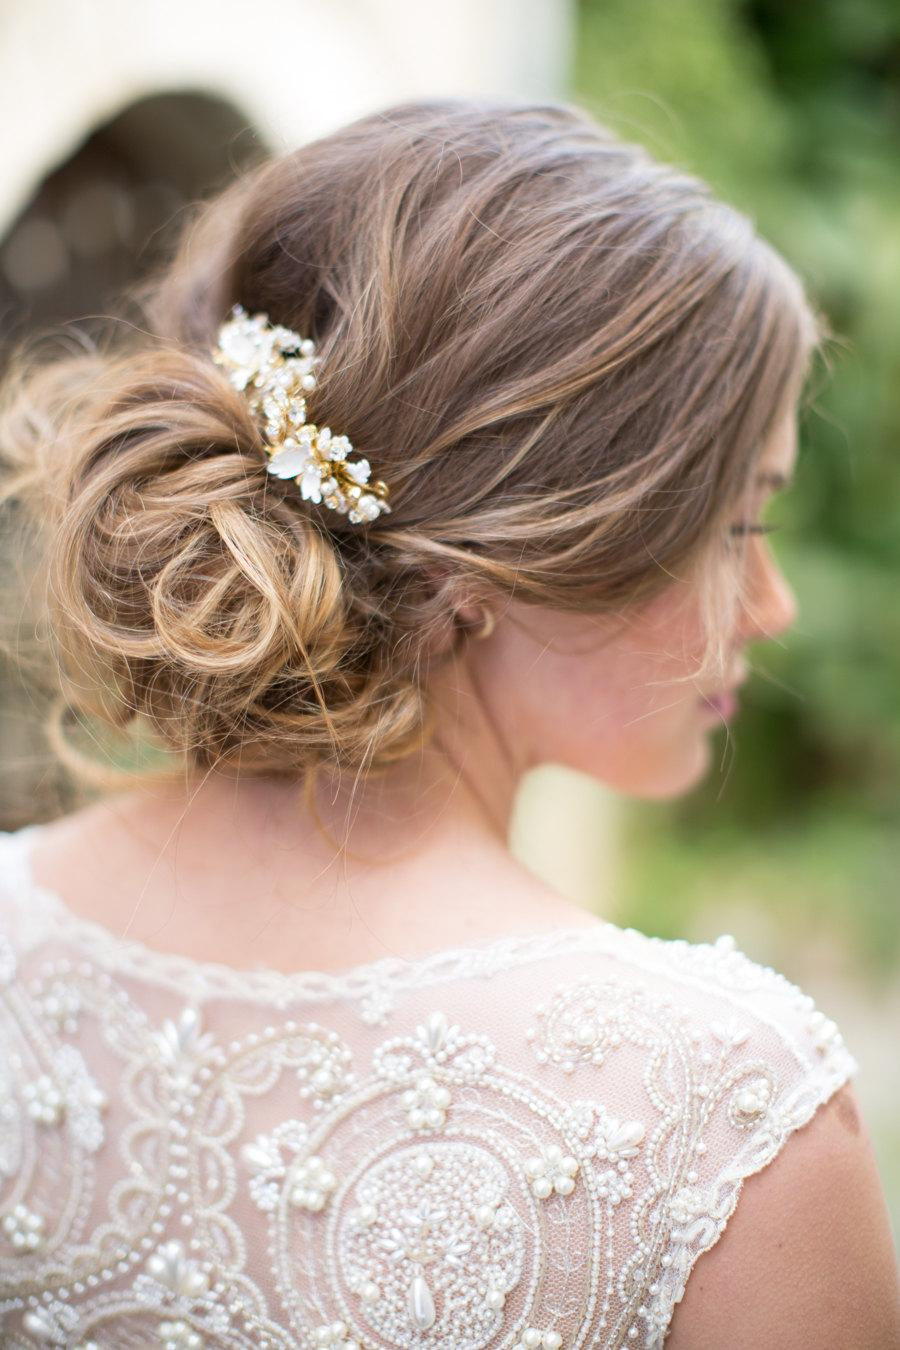 wedding hair accessory, beaded bridal hair comb set, floral